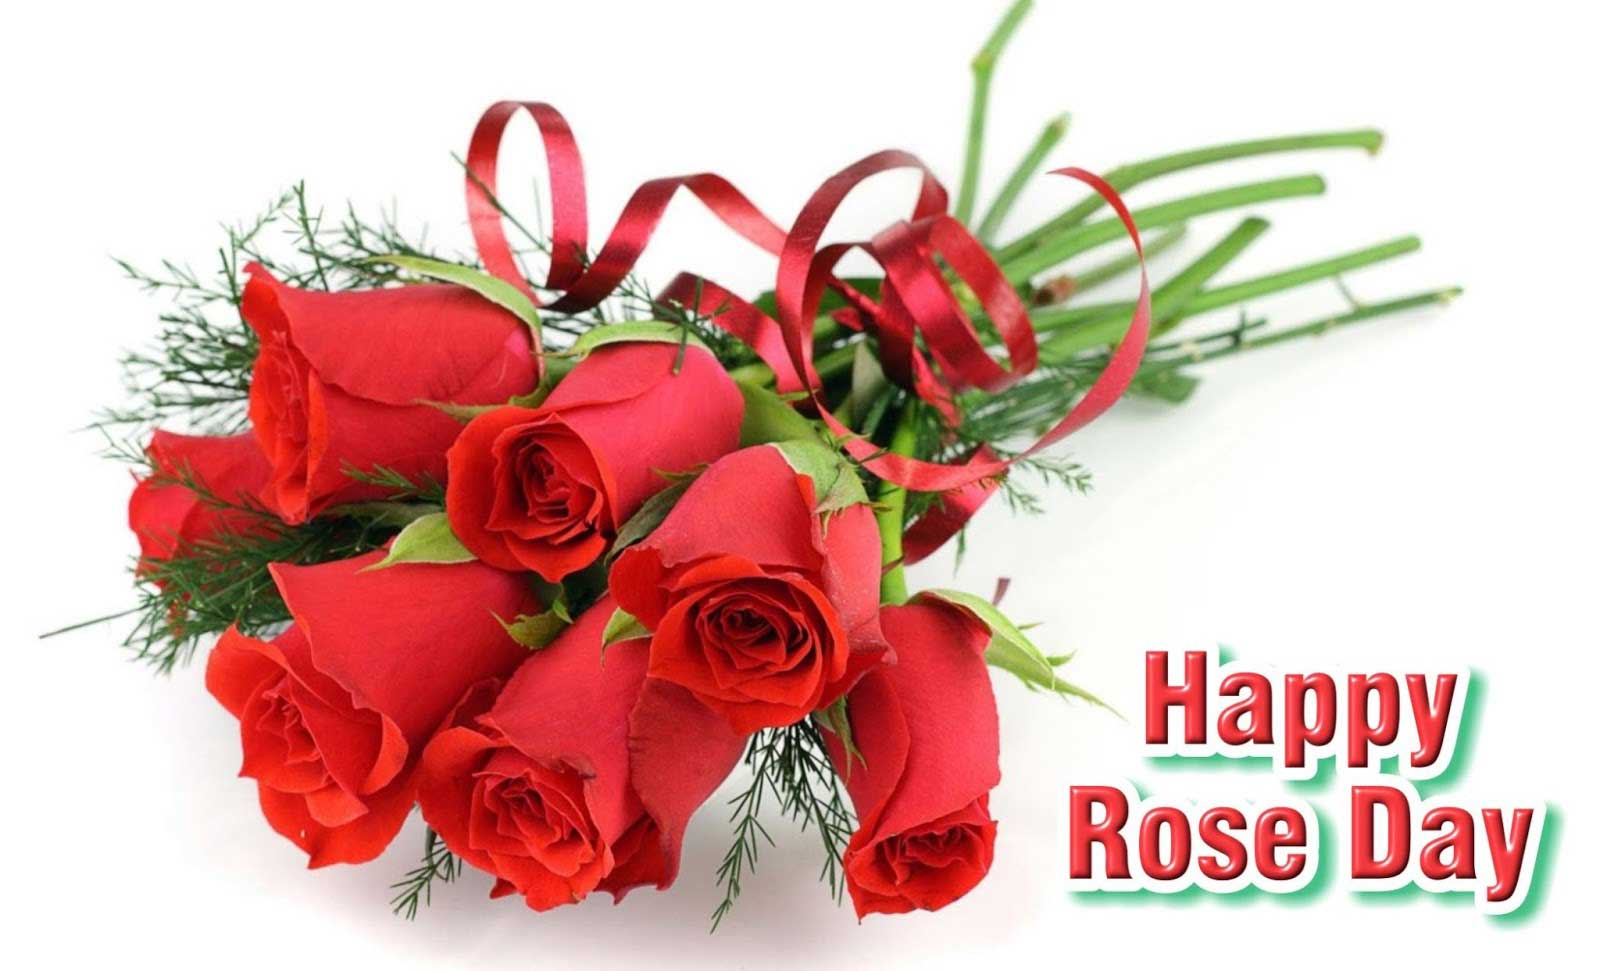 Happy Rose Day 2017 Lovely Wallpaper